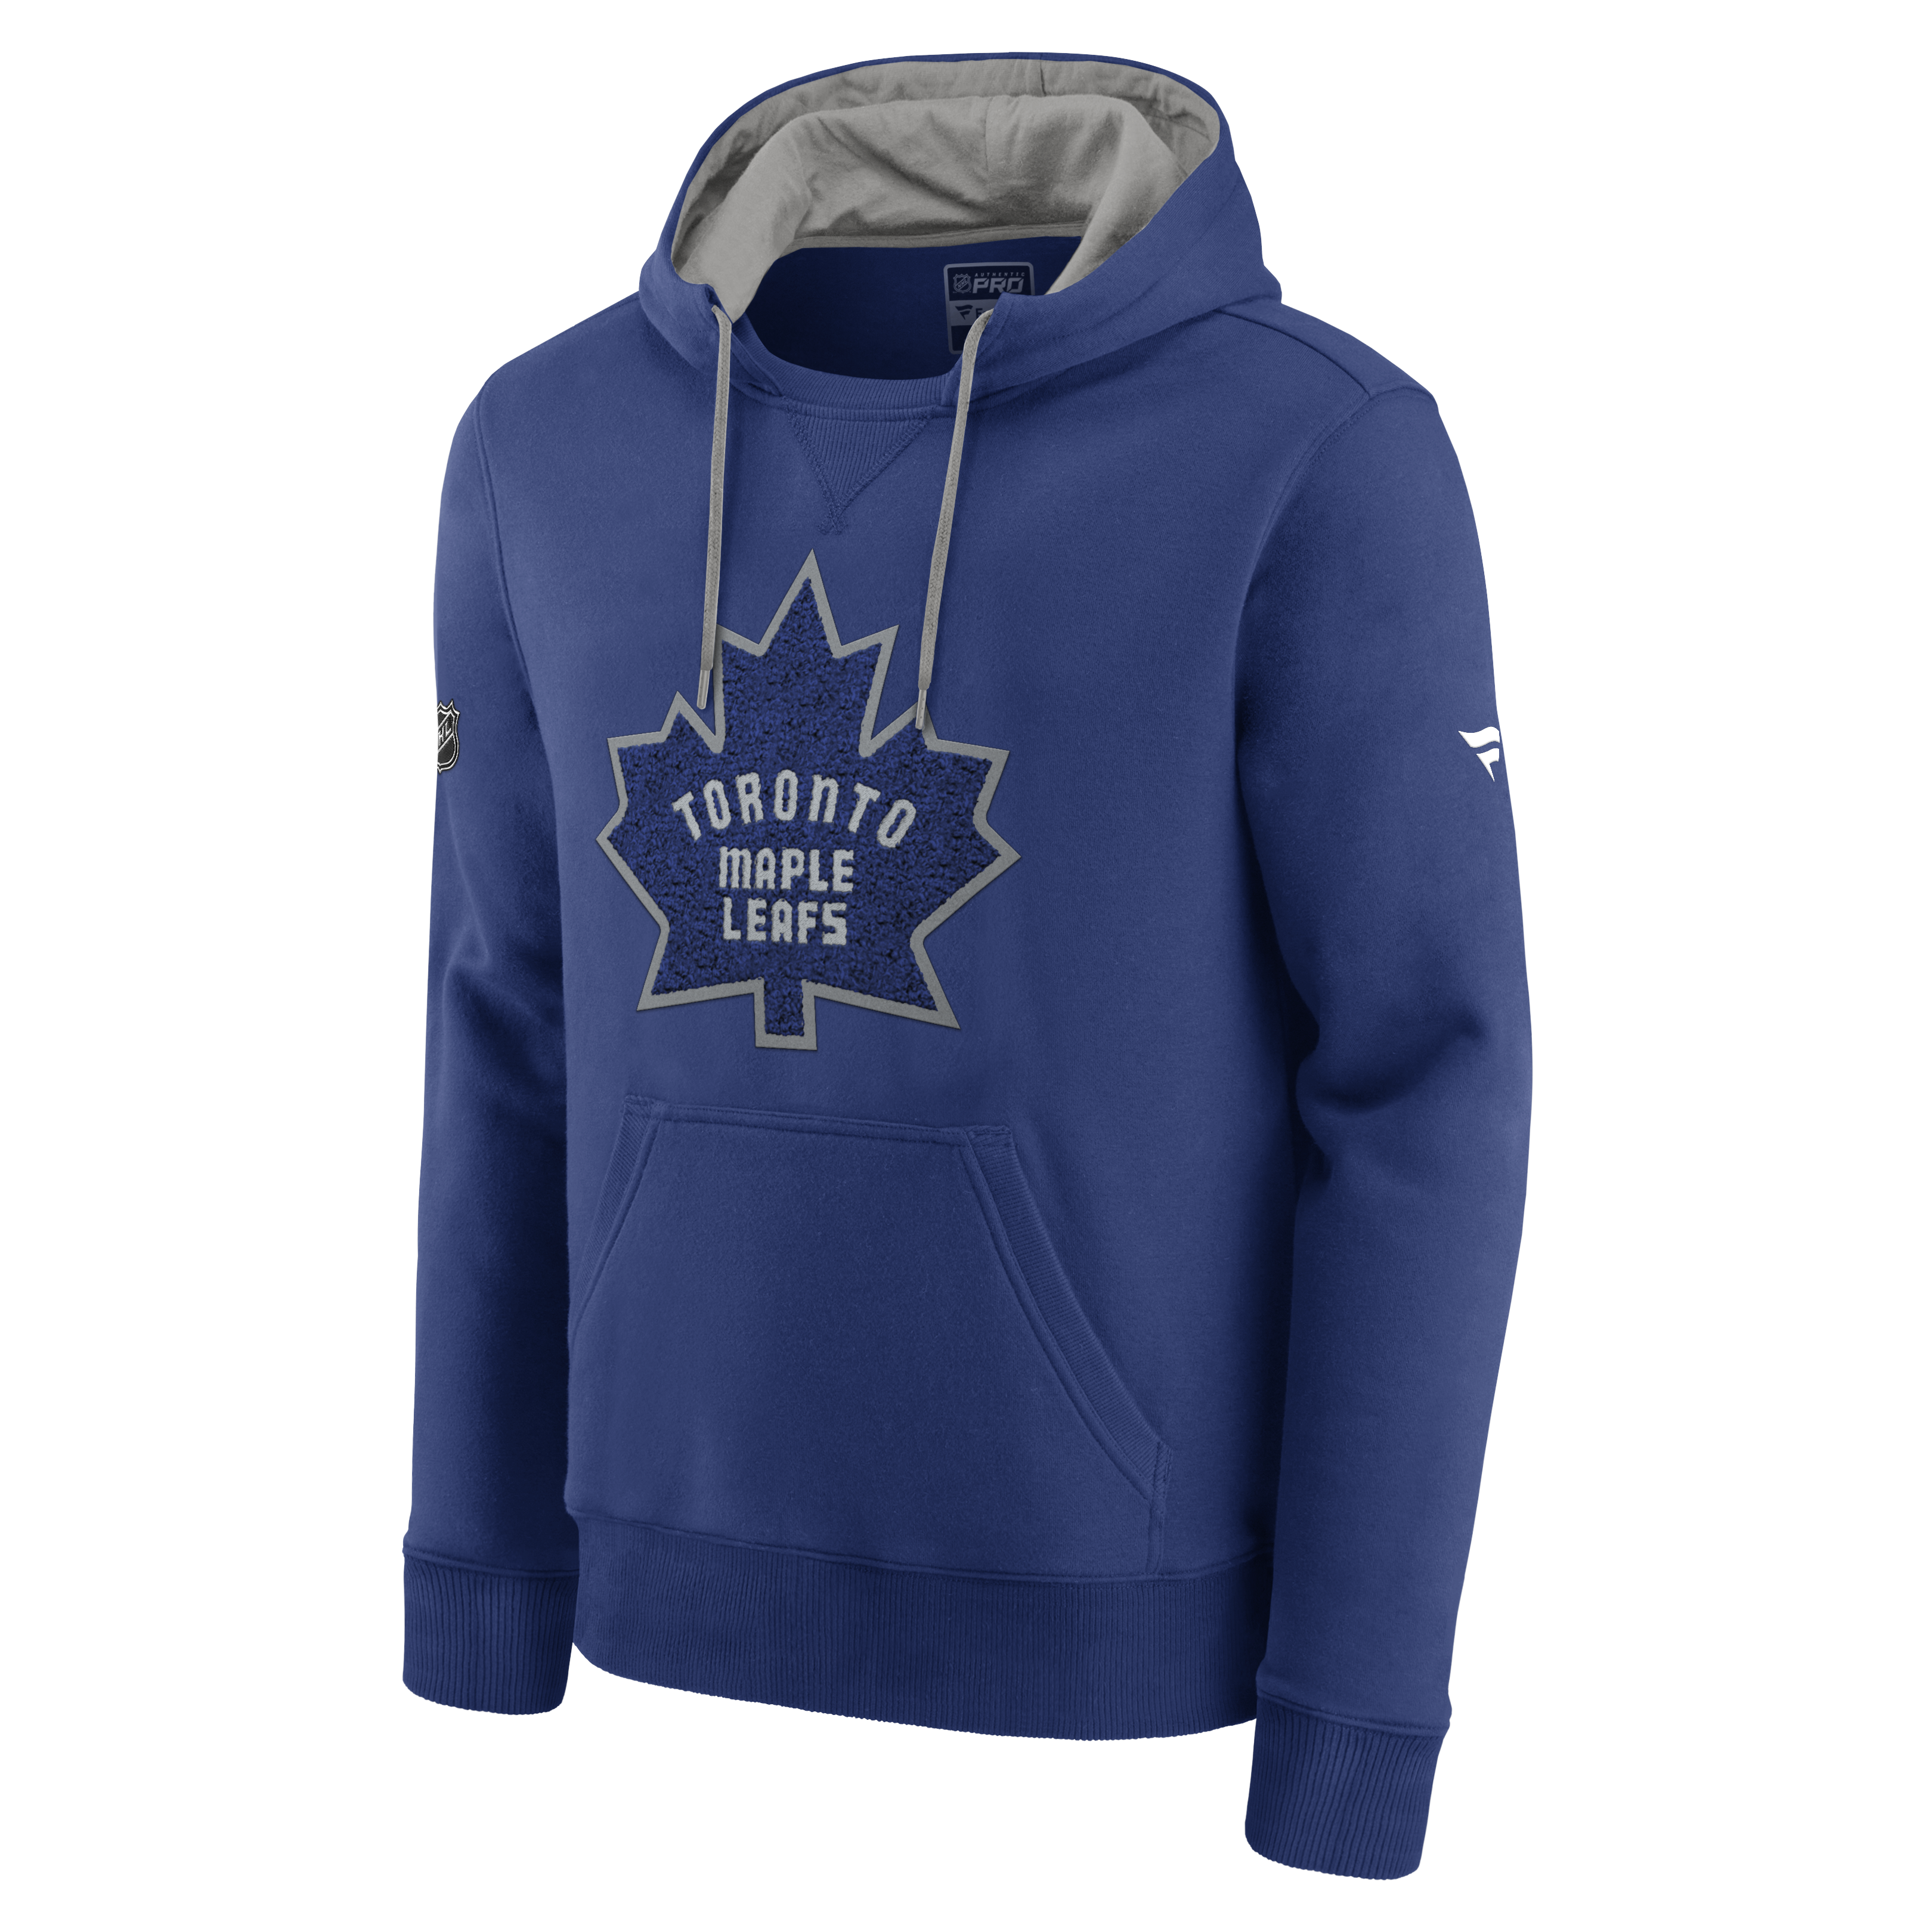 Maple Leafs Men's Special Edition Archival Throwback Hoody